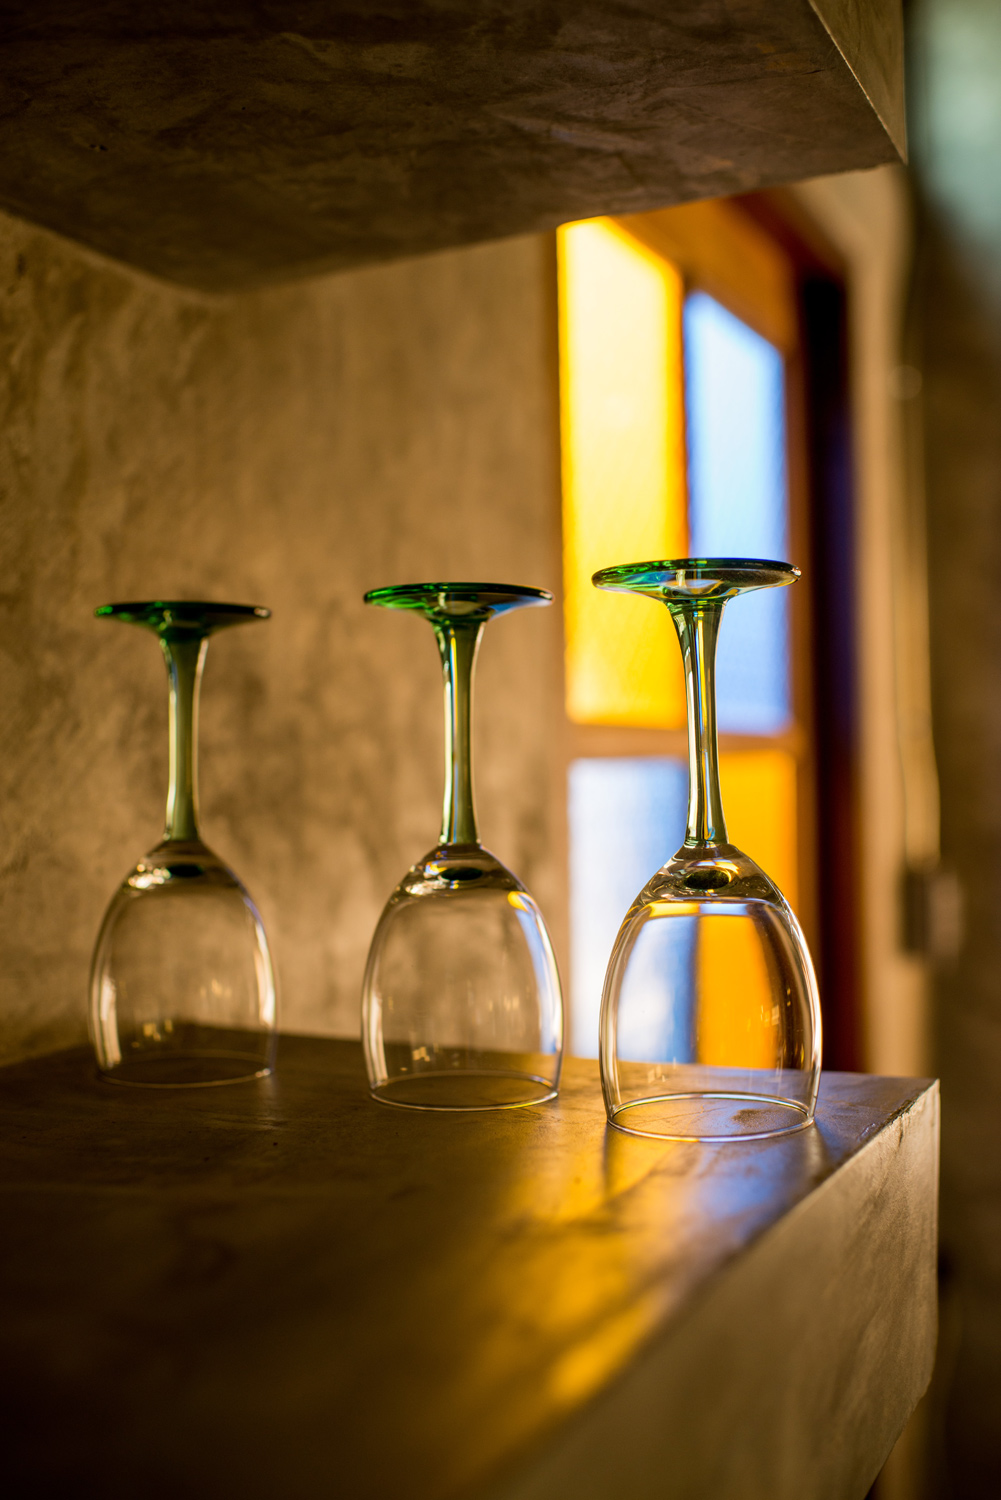 how to photograph ordinary things - unused wine glasses on a table